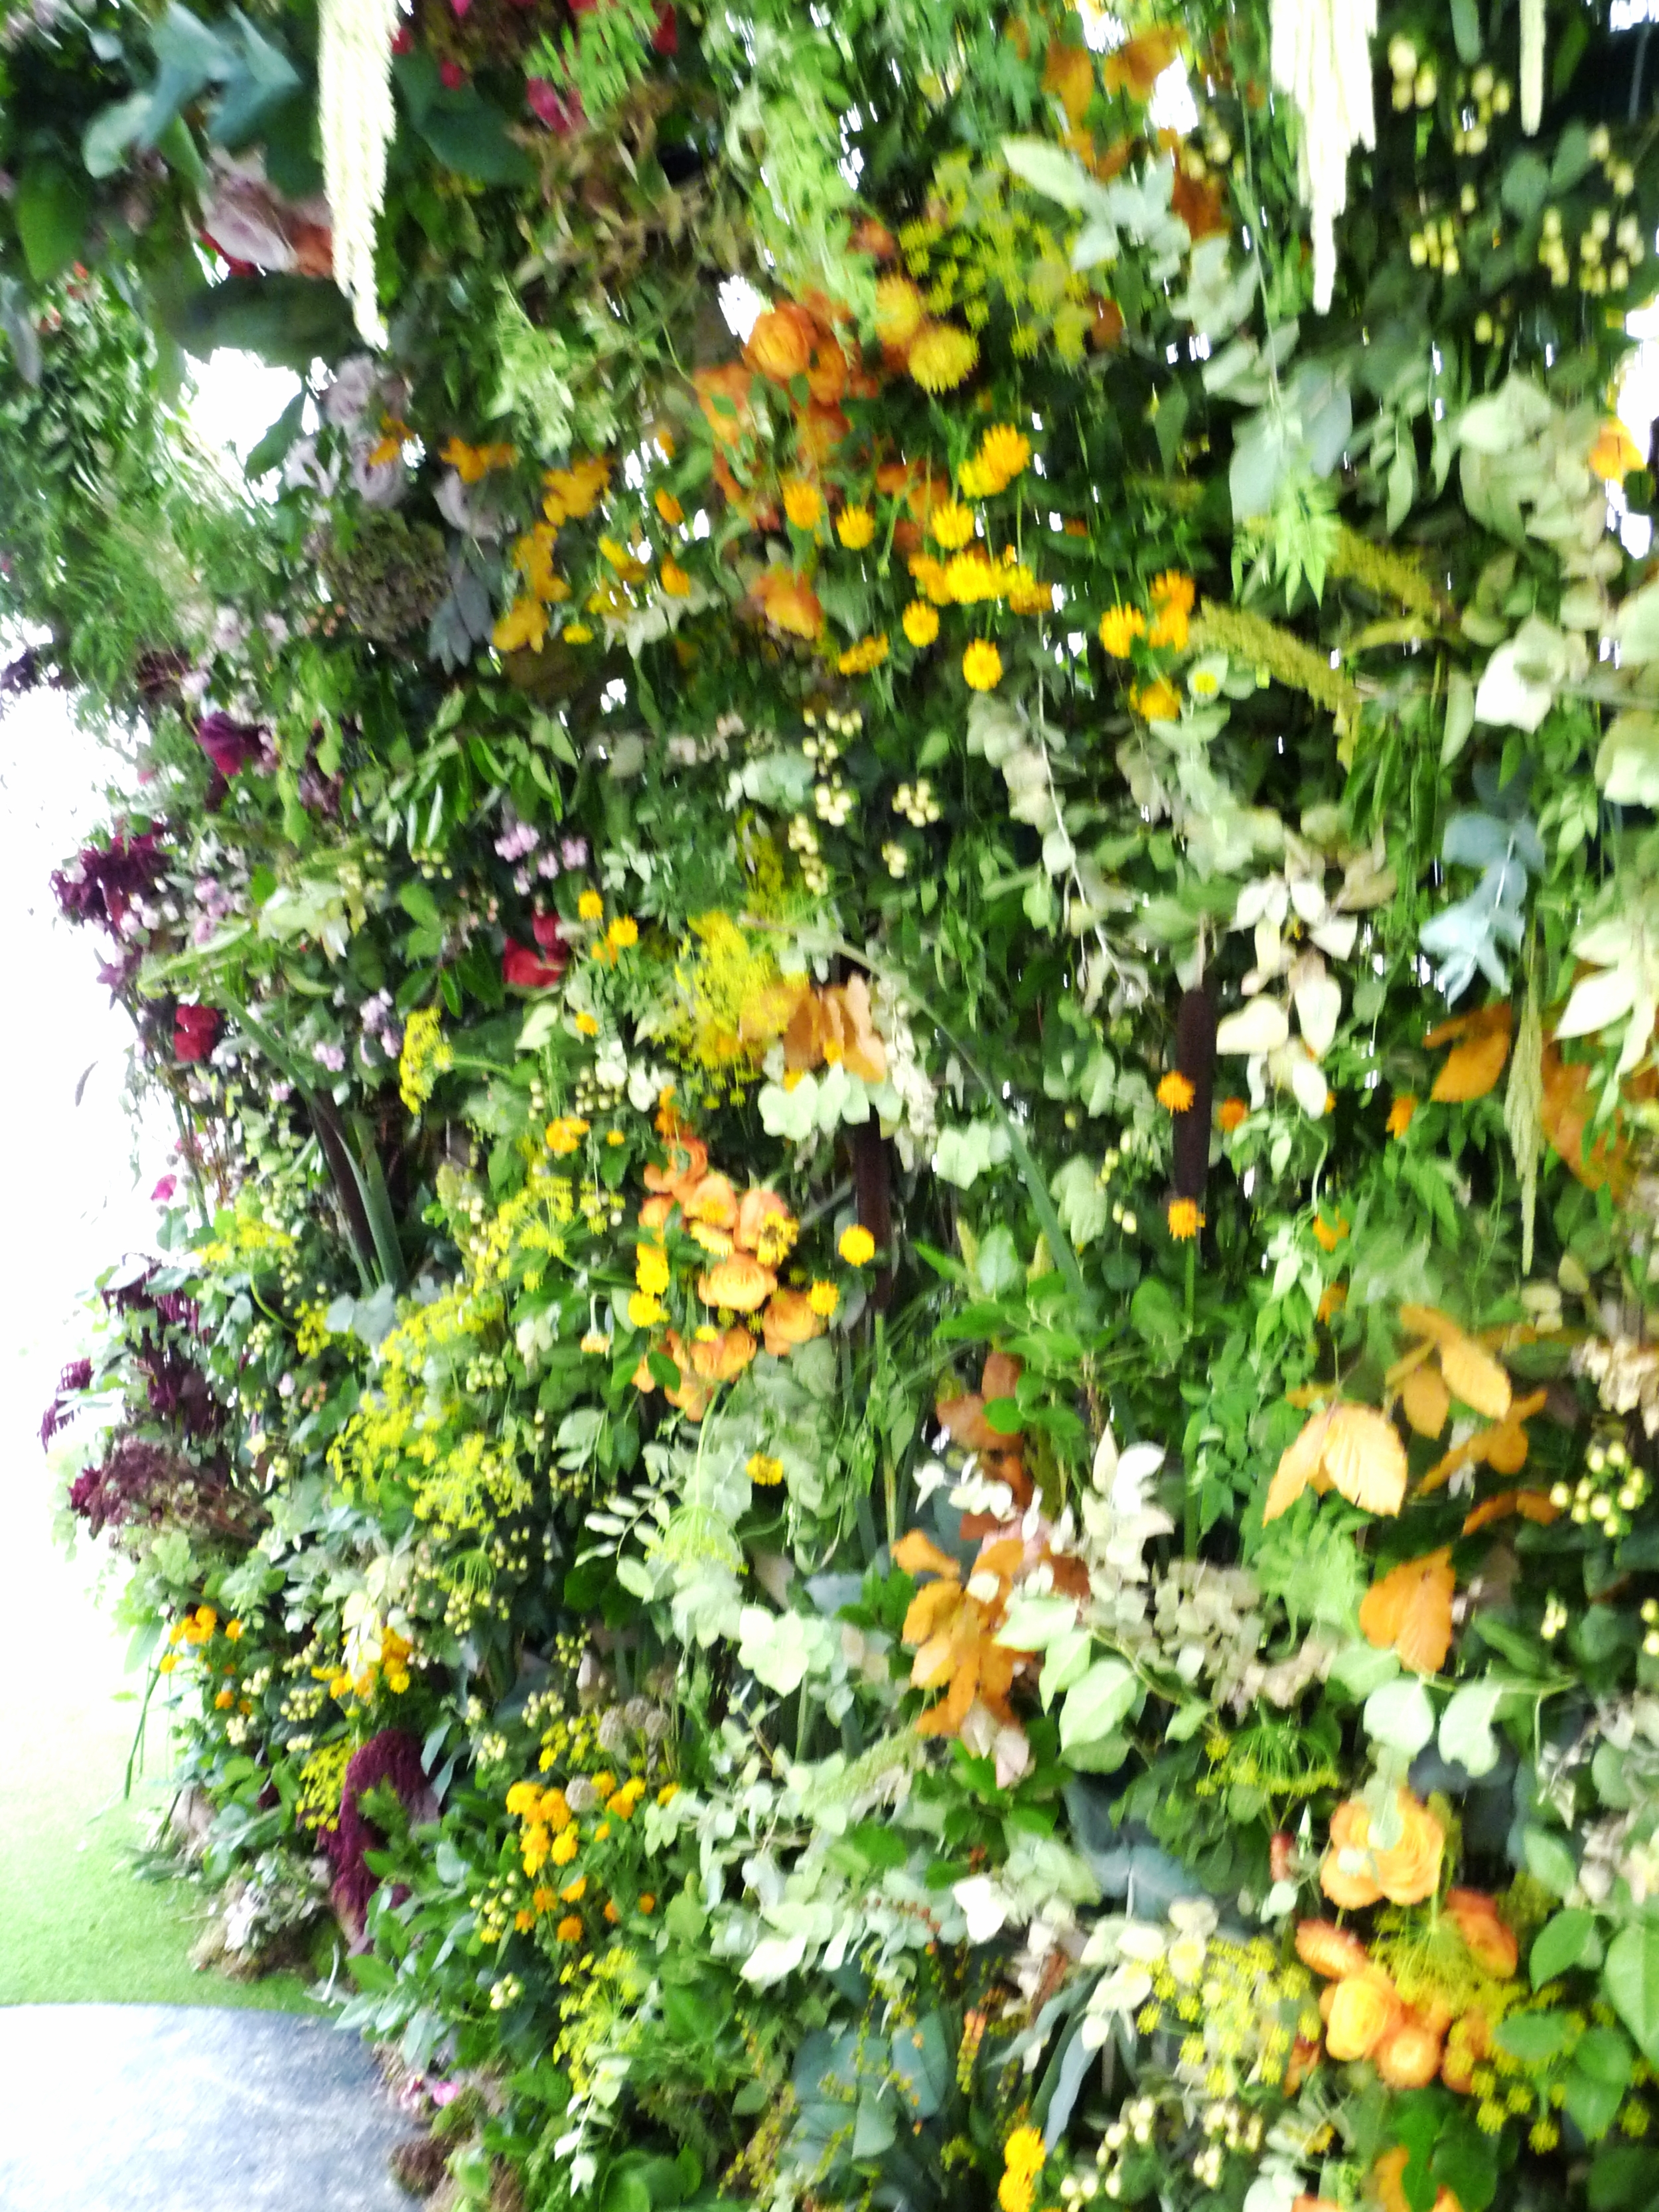 Inside the arch of flowers